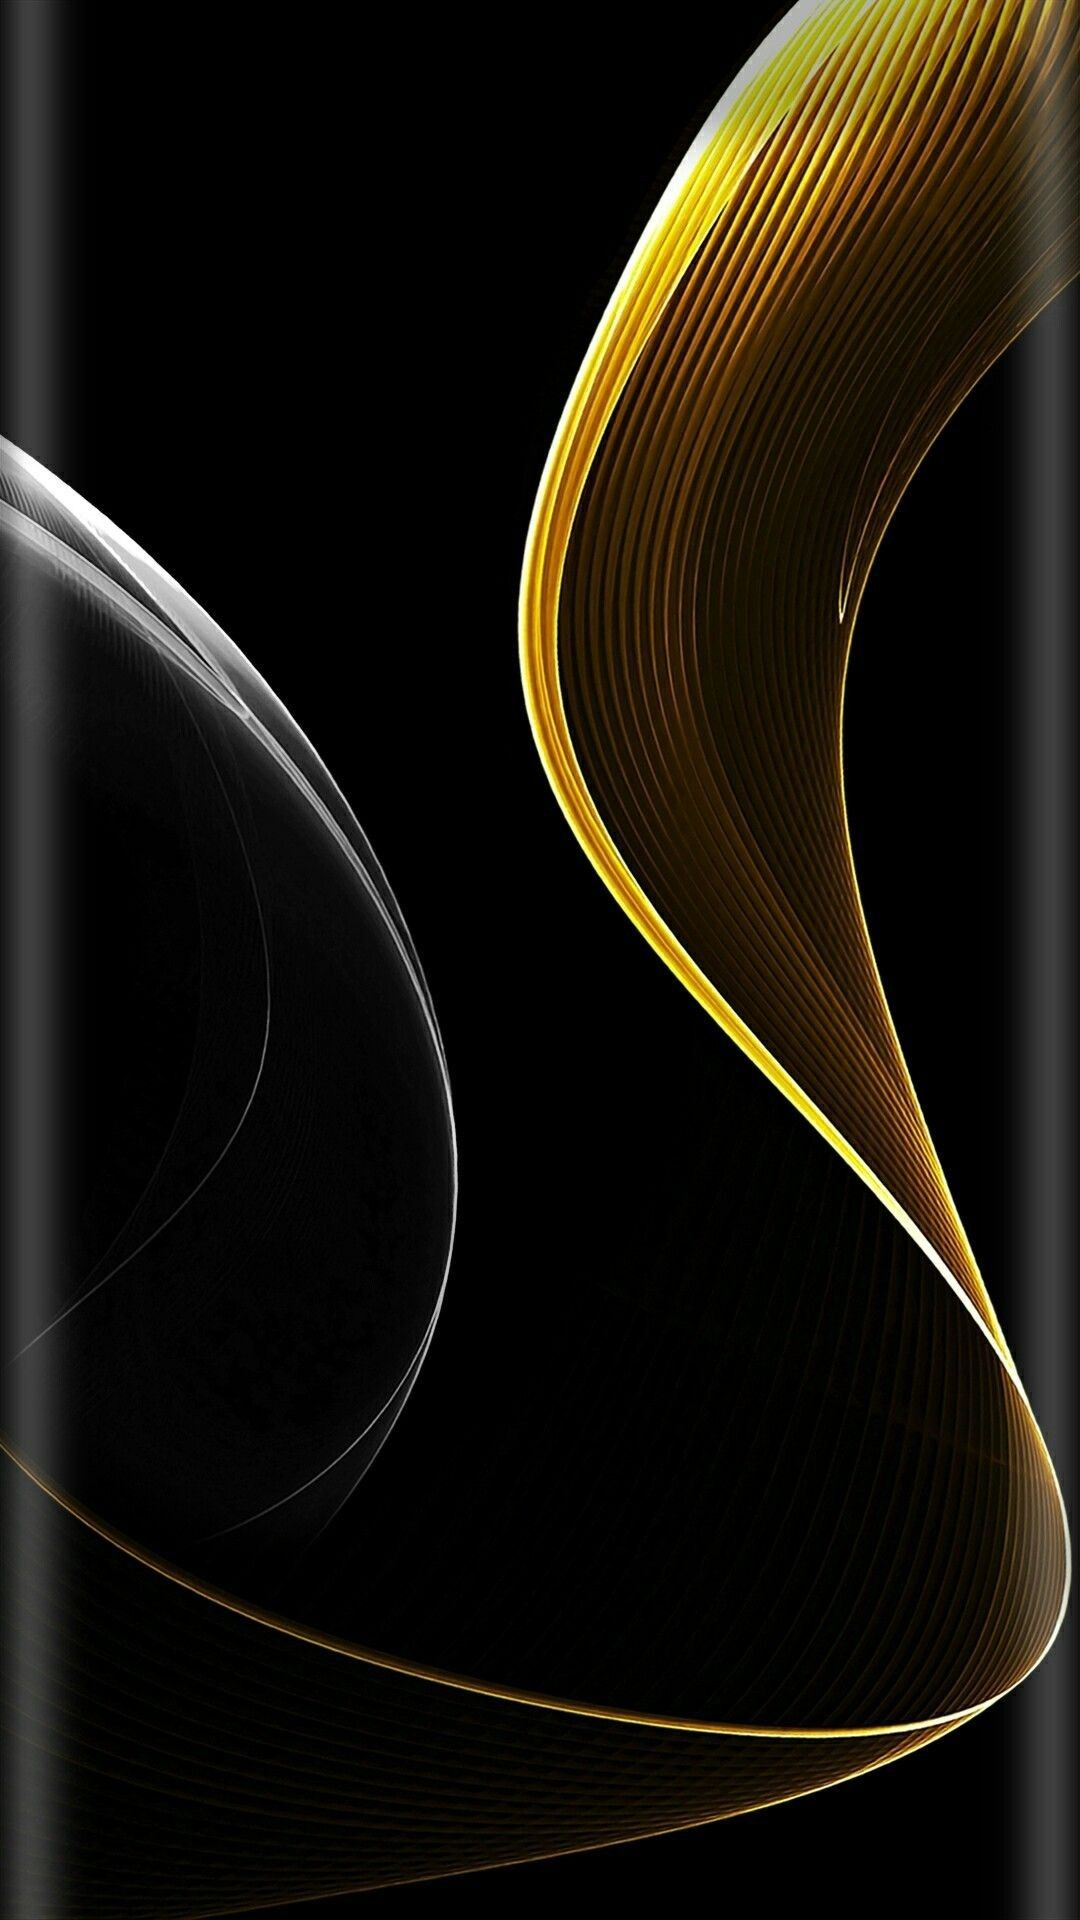 wallpaper samsung hd wallpaper desktop backgrounds iphone wallpapers android apple screen abstract funds black and gold wallpaper